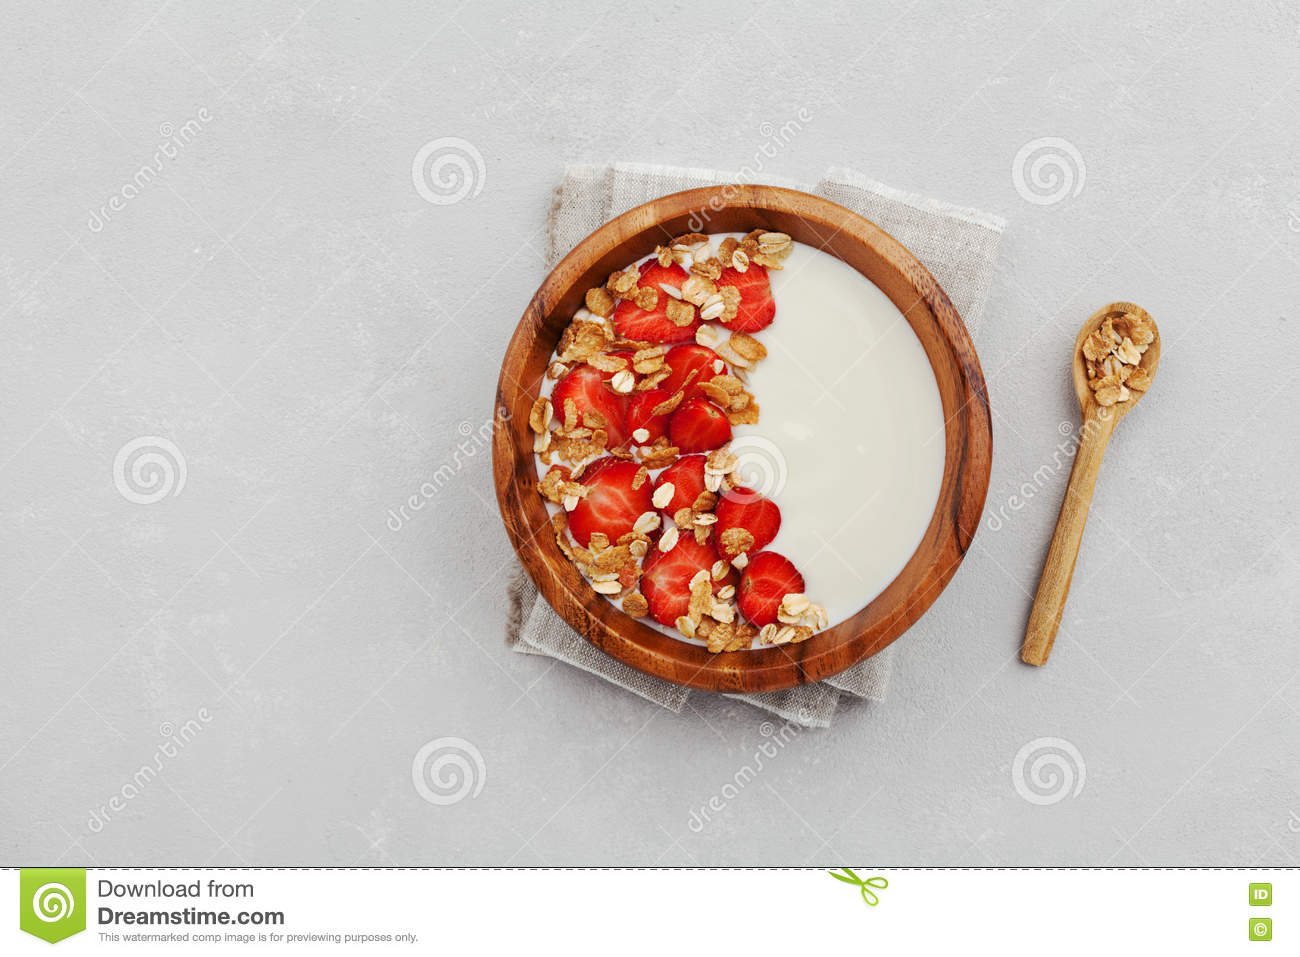 Homemade yogurt in wooden bowl with strawberry and granola or muesli on light table, healthy breakfast from above